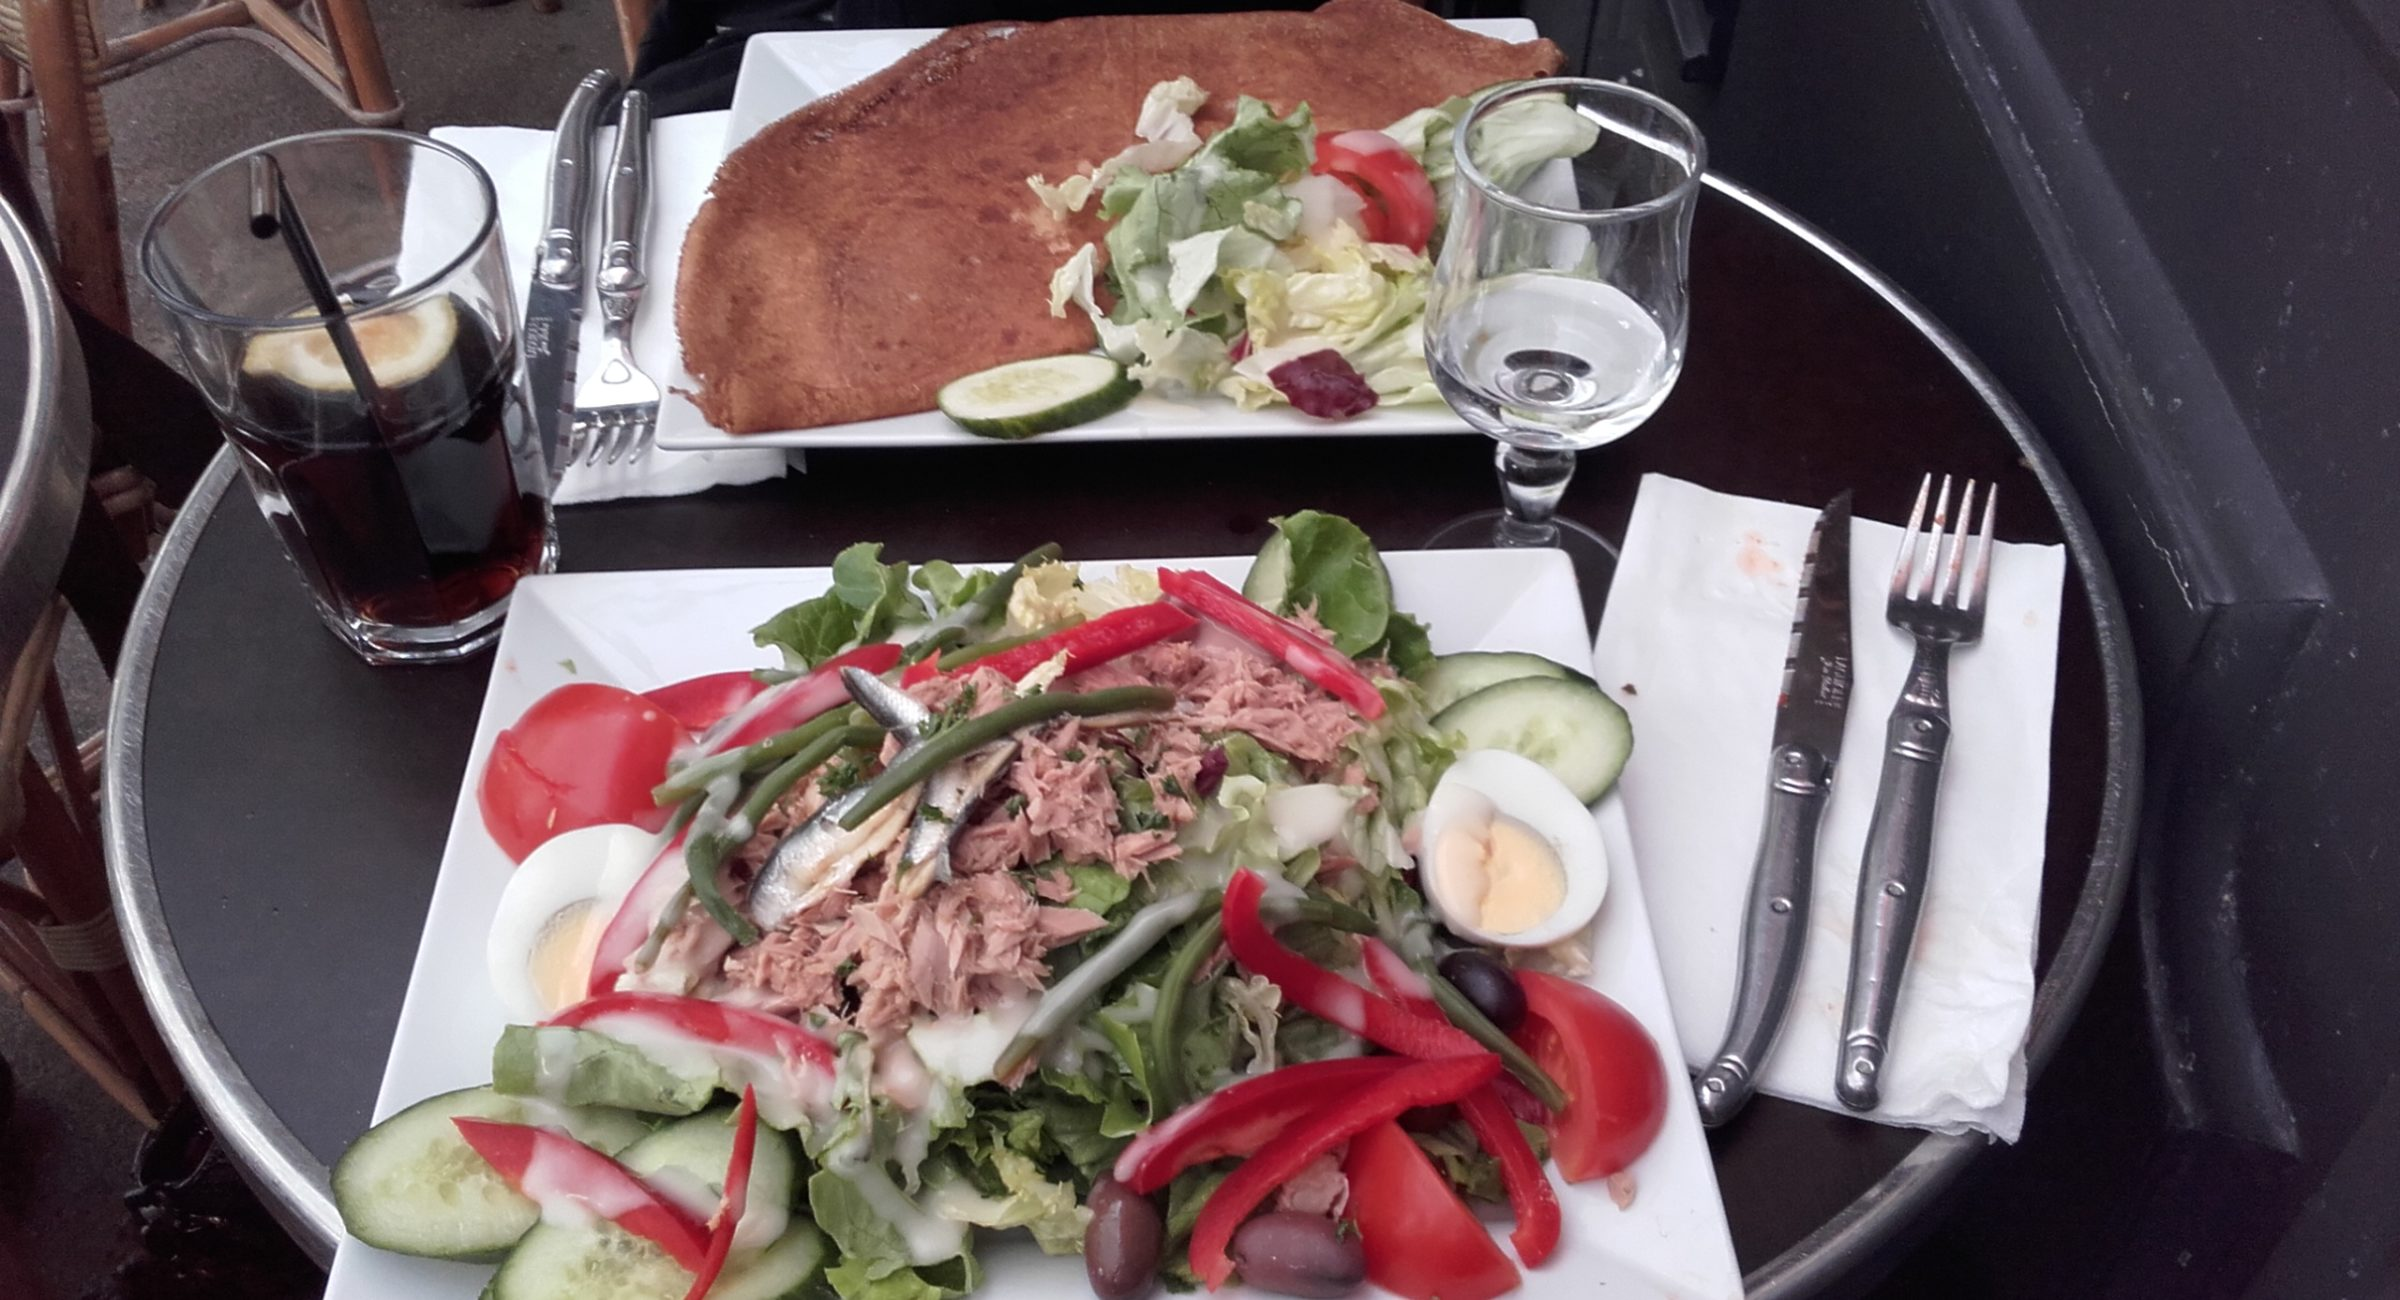 salad and a crepe from Le saint severin